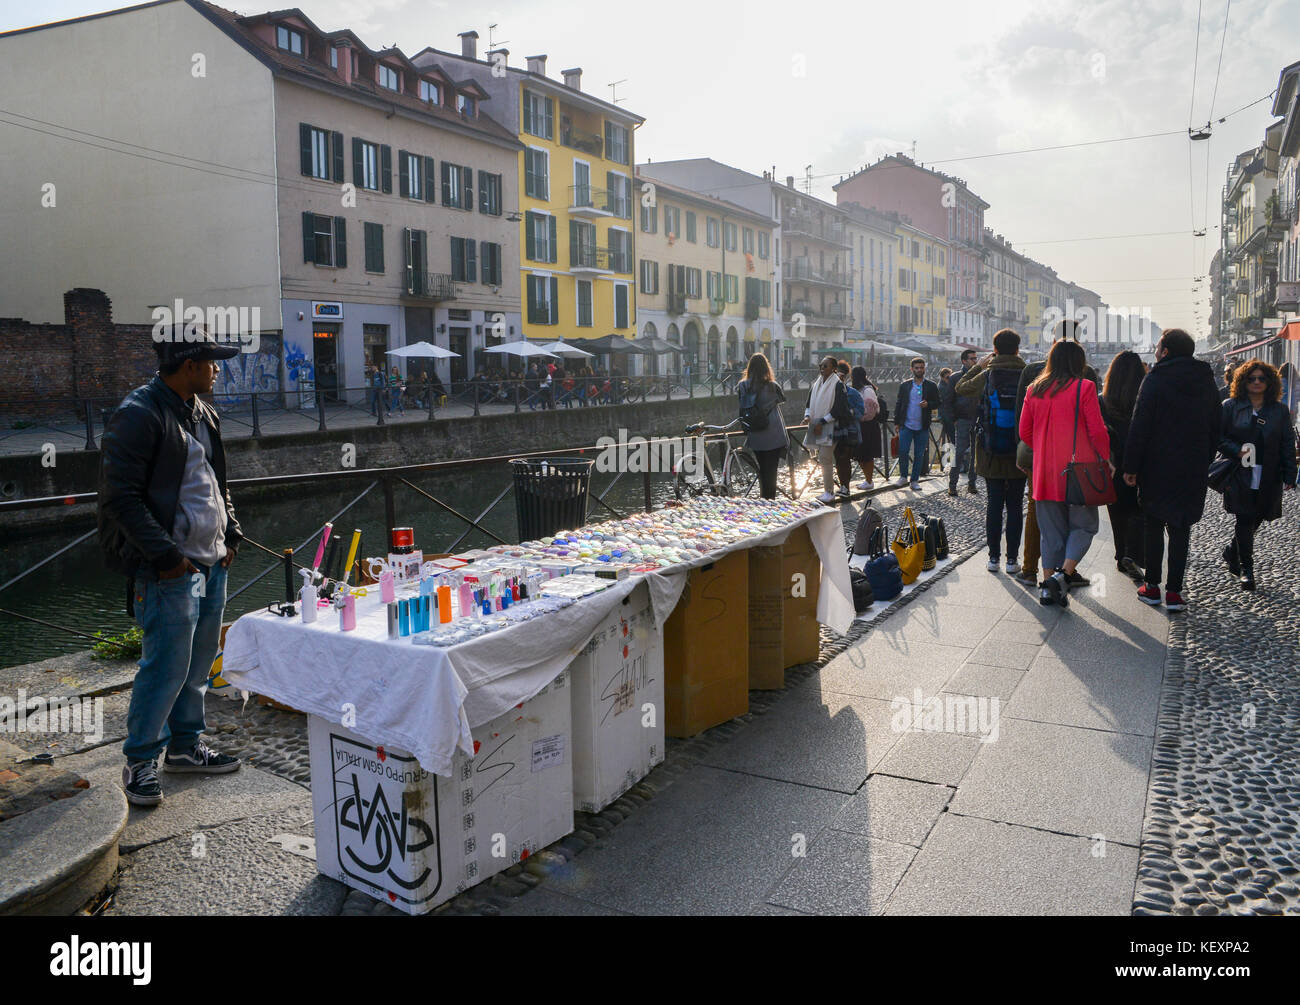 Photos Fake Images amp; Alamy Goods pqW5CY85Tf